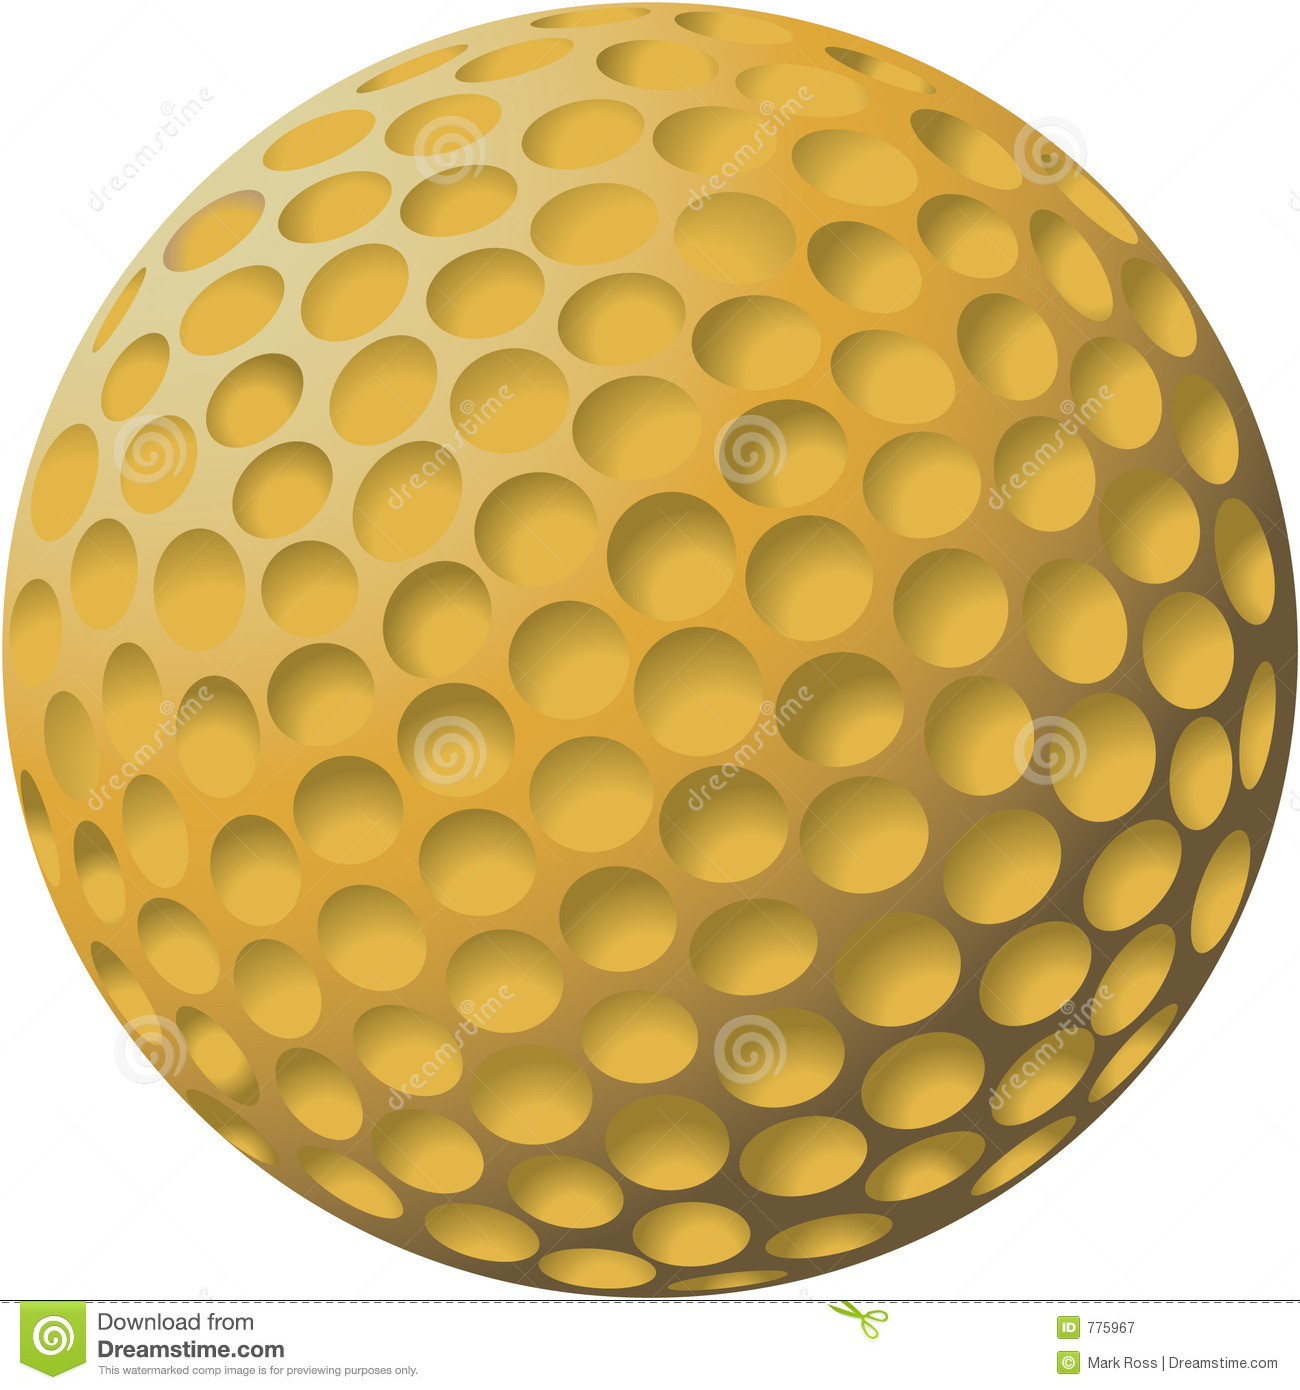 pictures of golf balls clipart - photo #30